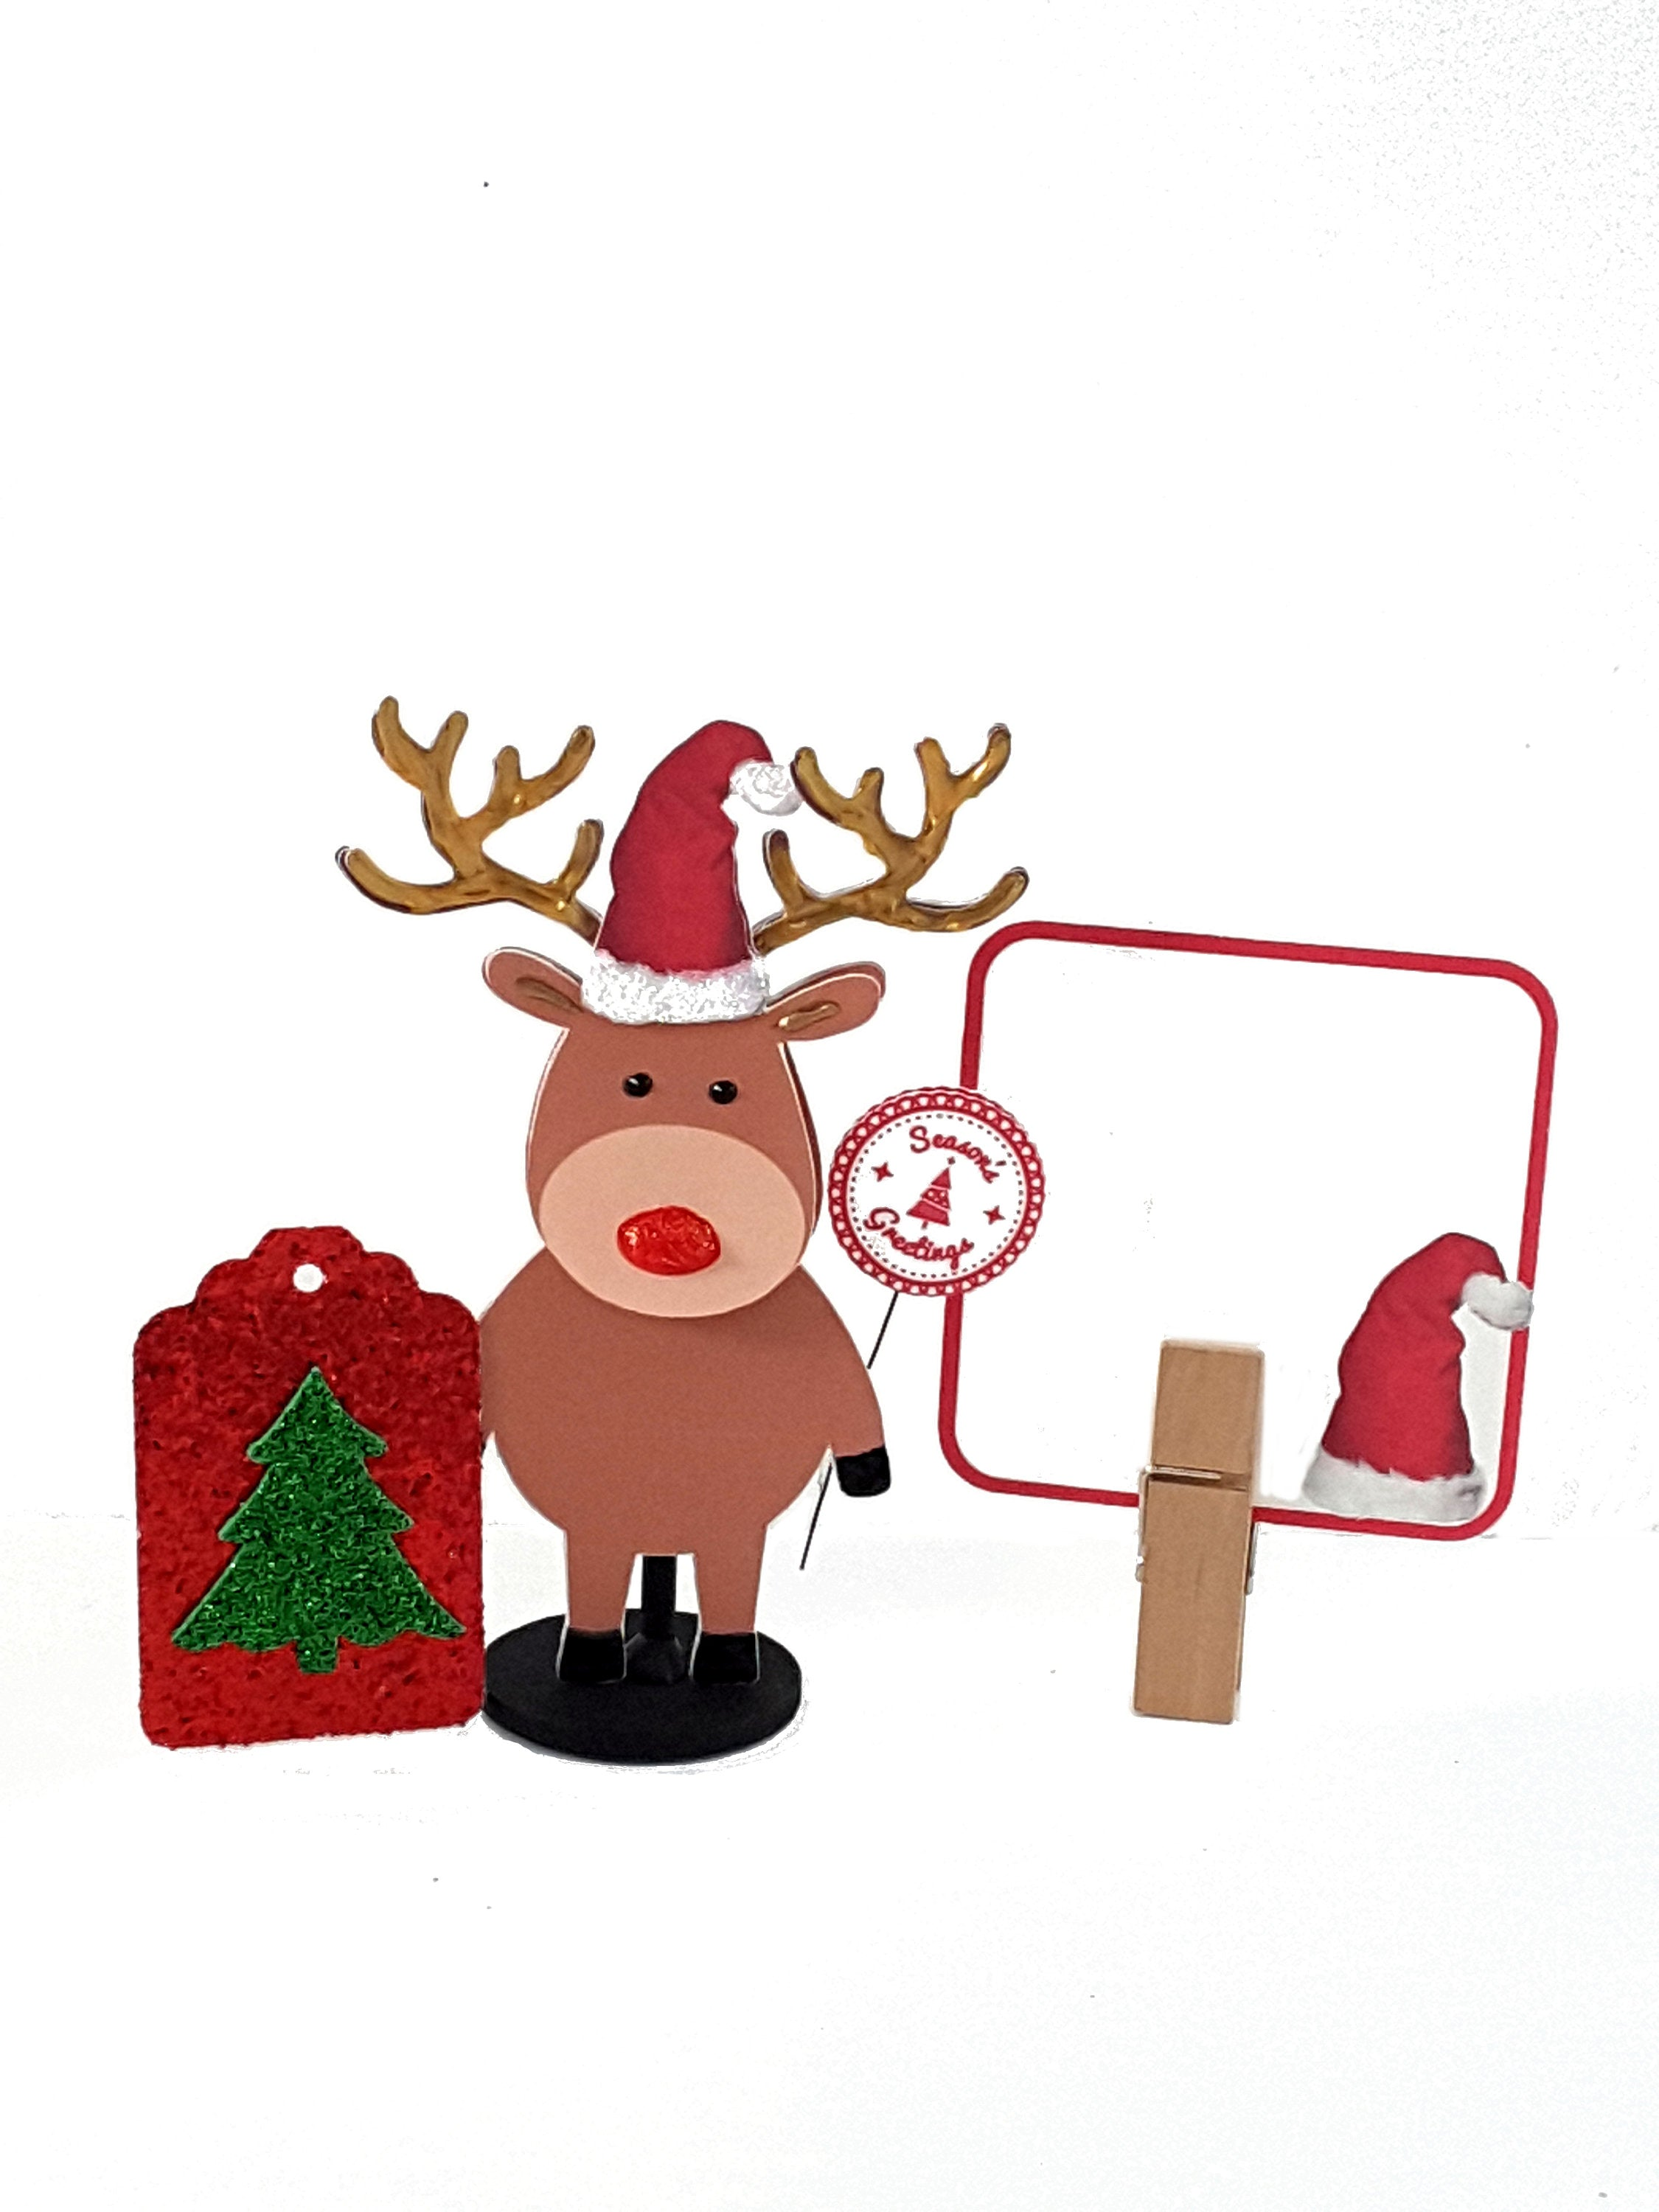 Christmas Greeting Card with Stand Up Rudolph the Red-Nosed Reindeer, Christmas Gift - TheLastWordBish.com